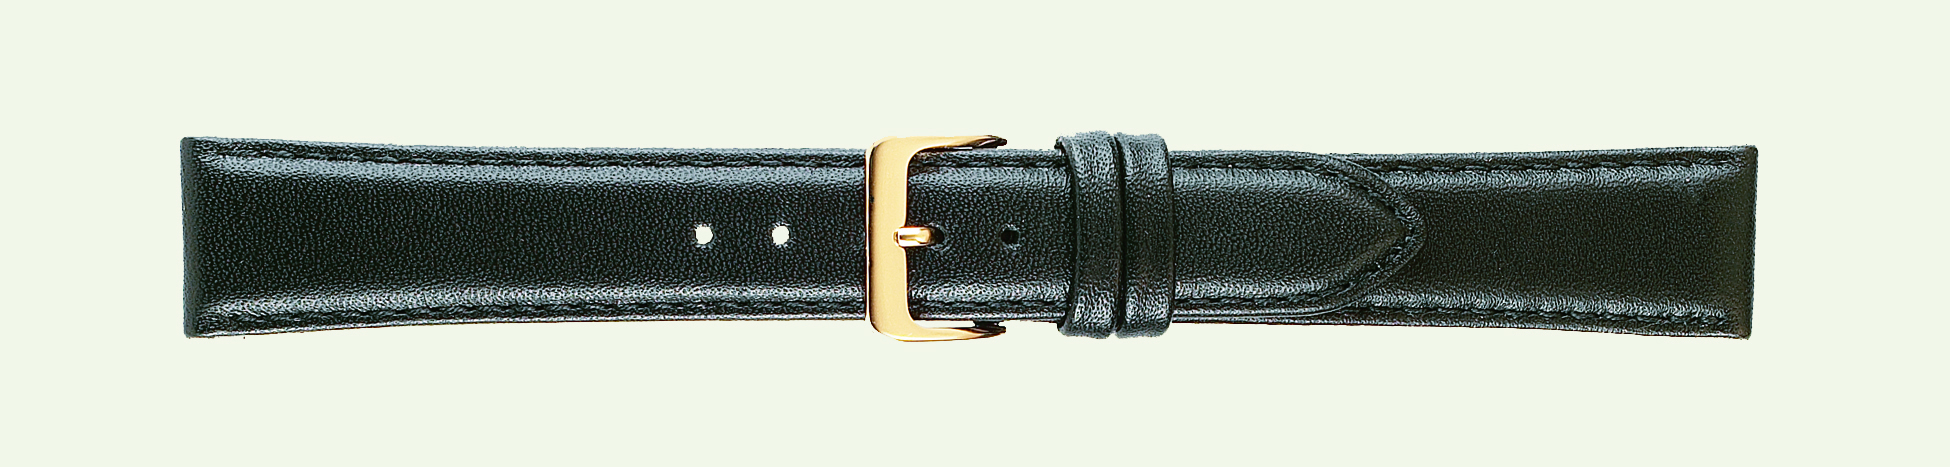 22MM Leather Band Black Classic Calf Long-0